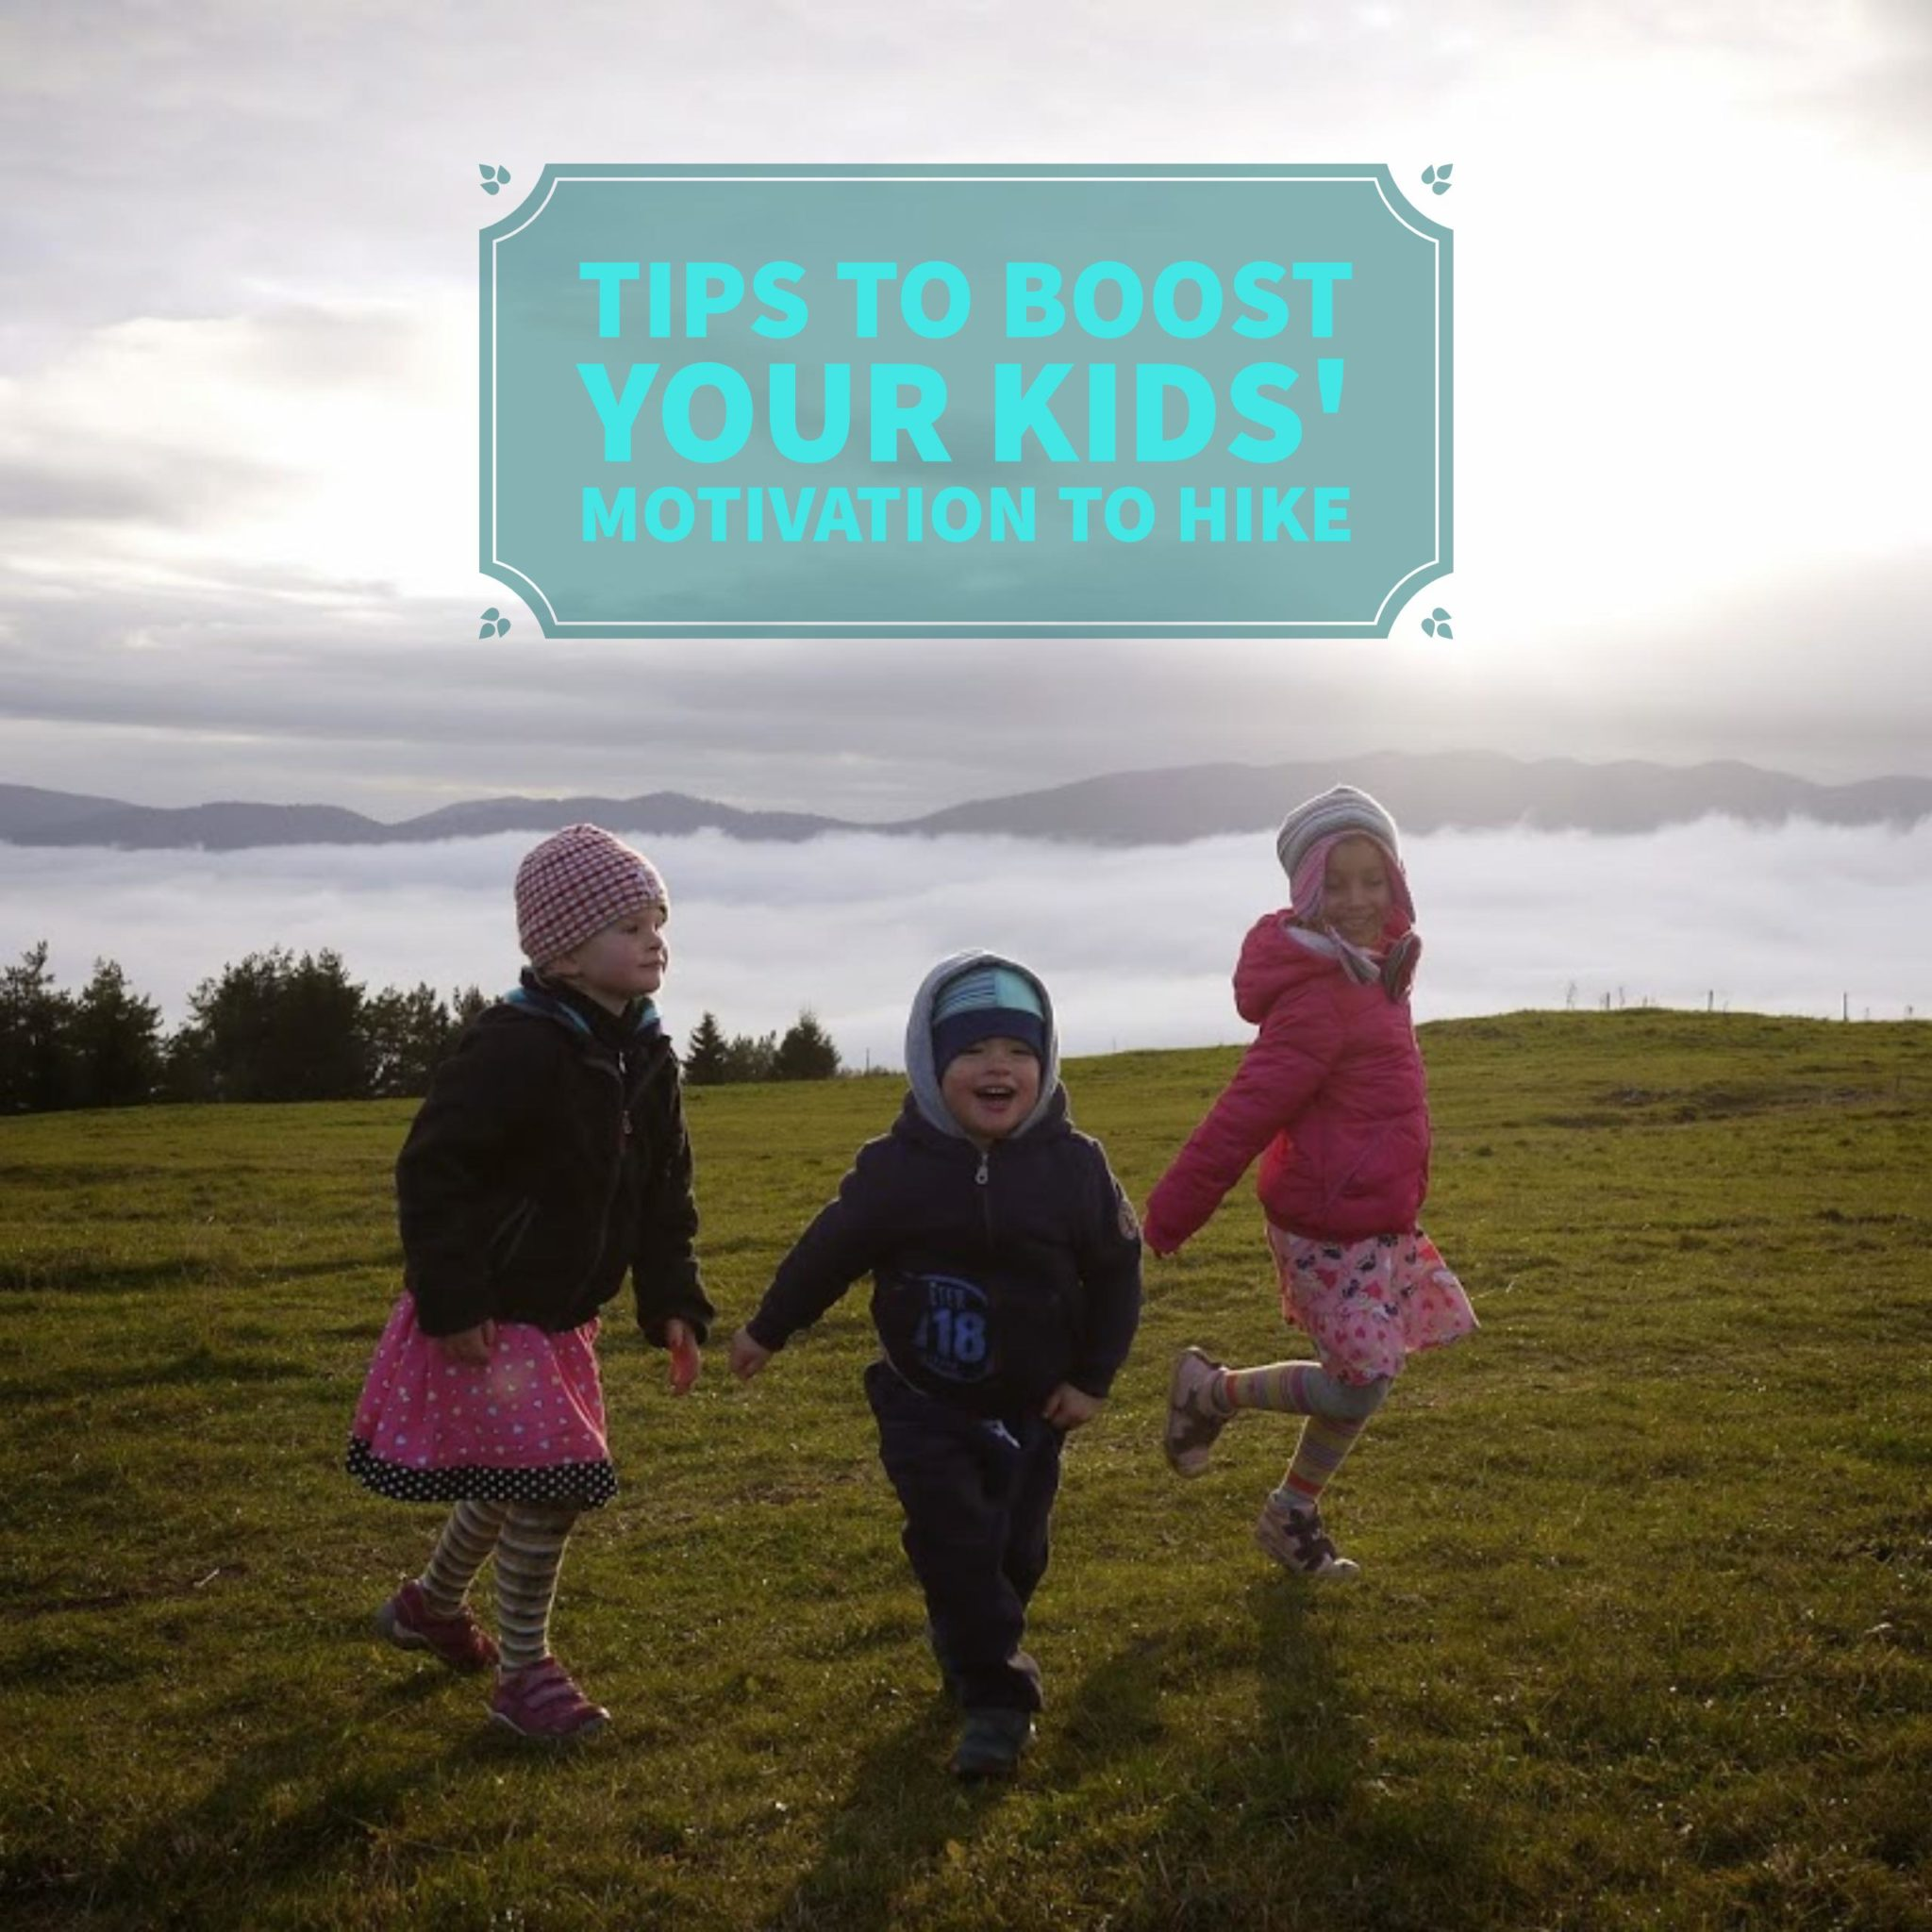 Tips to boost your kids' motivation to hike